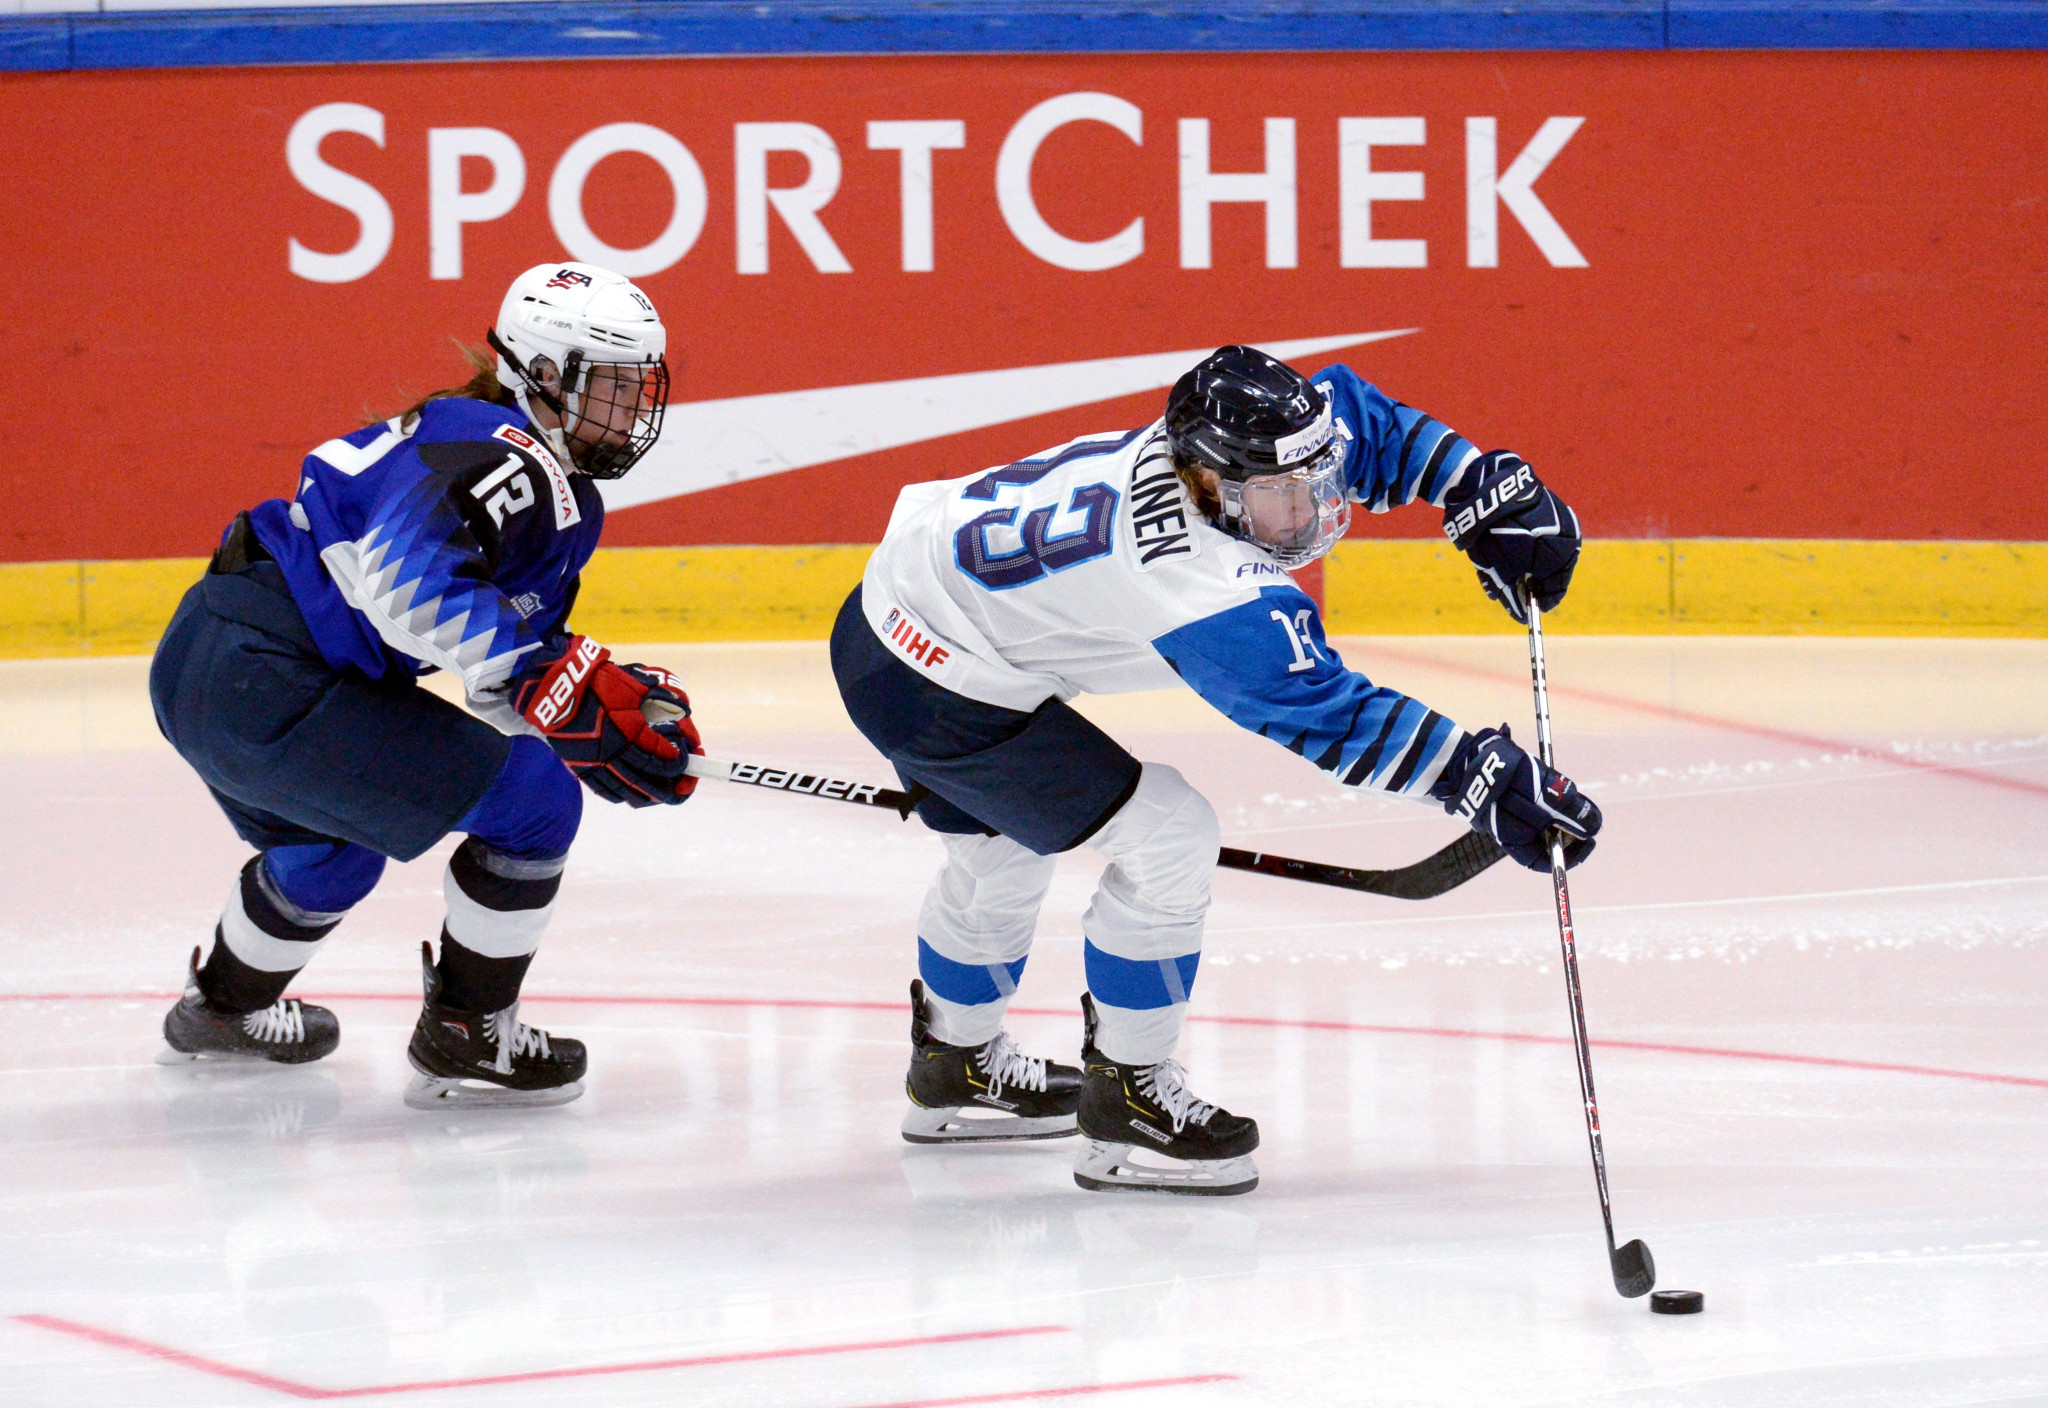 Sallinen won World Championship silver with Finland as they lost to United States in a controversial final this year ©Getty Images